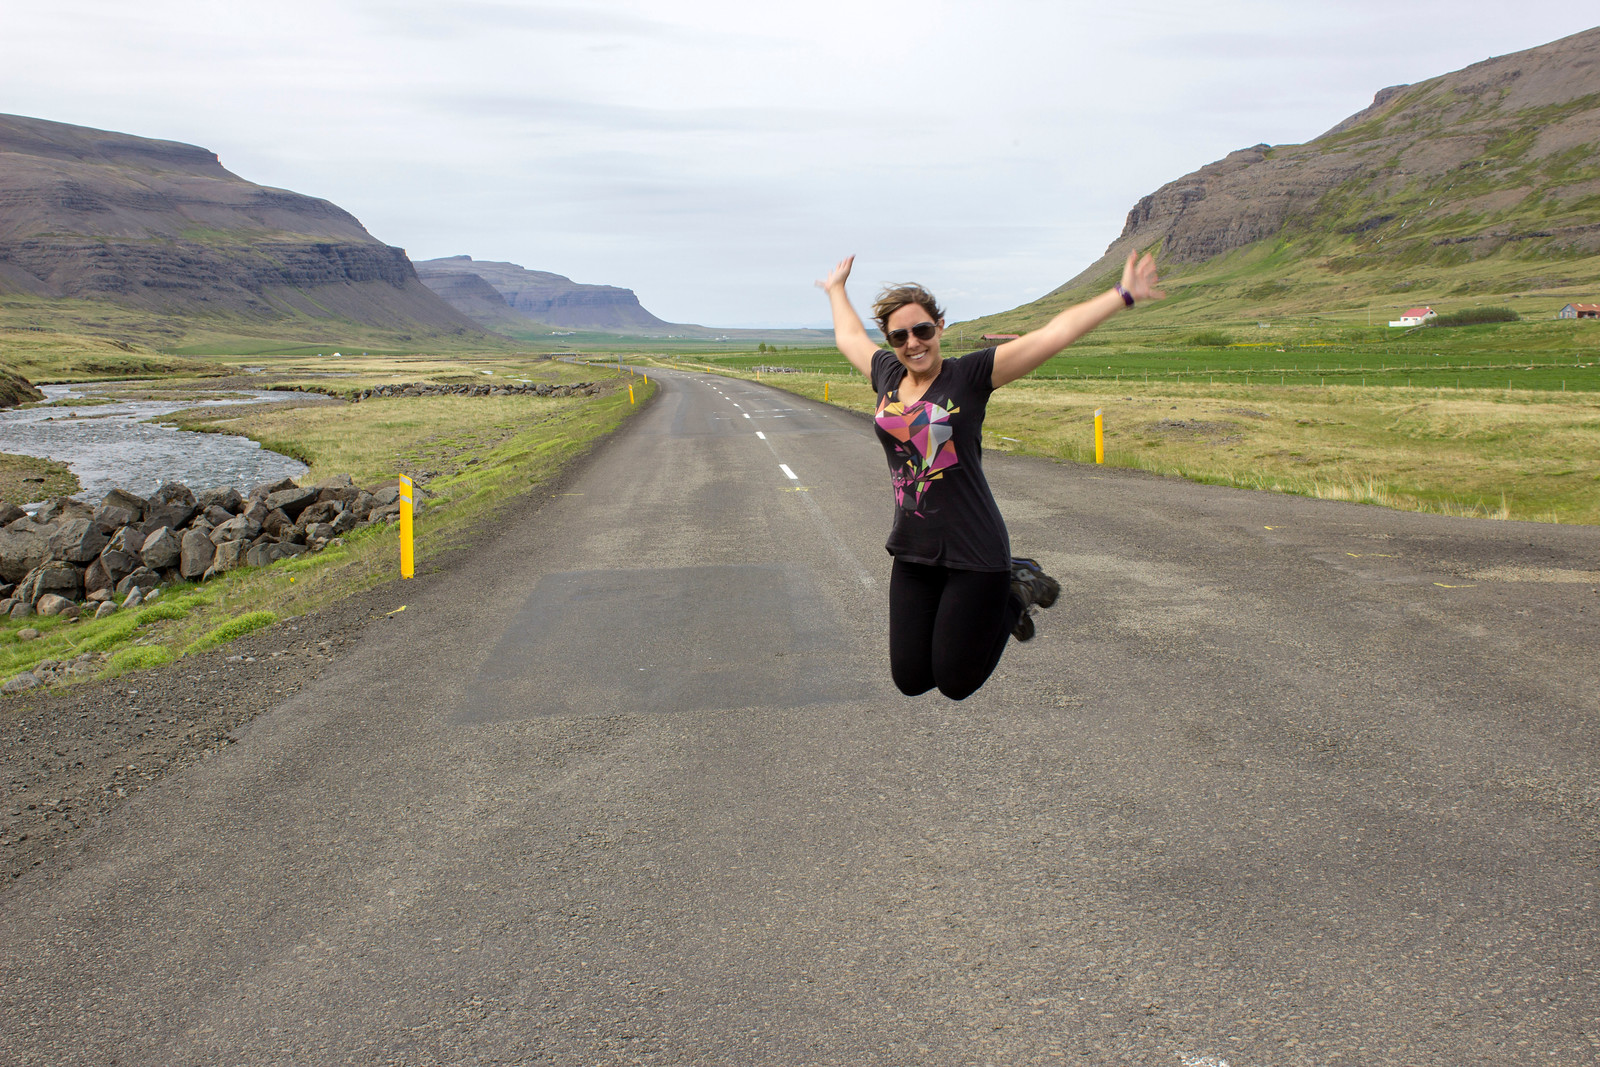 In the Westfjords, where there aren't many people or cars. Obligatory jumping in the road picture, Iceland.